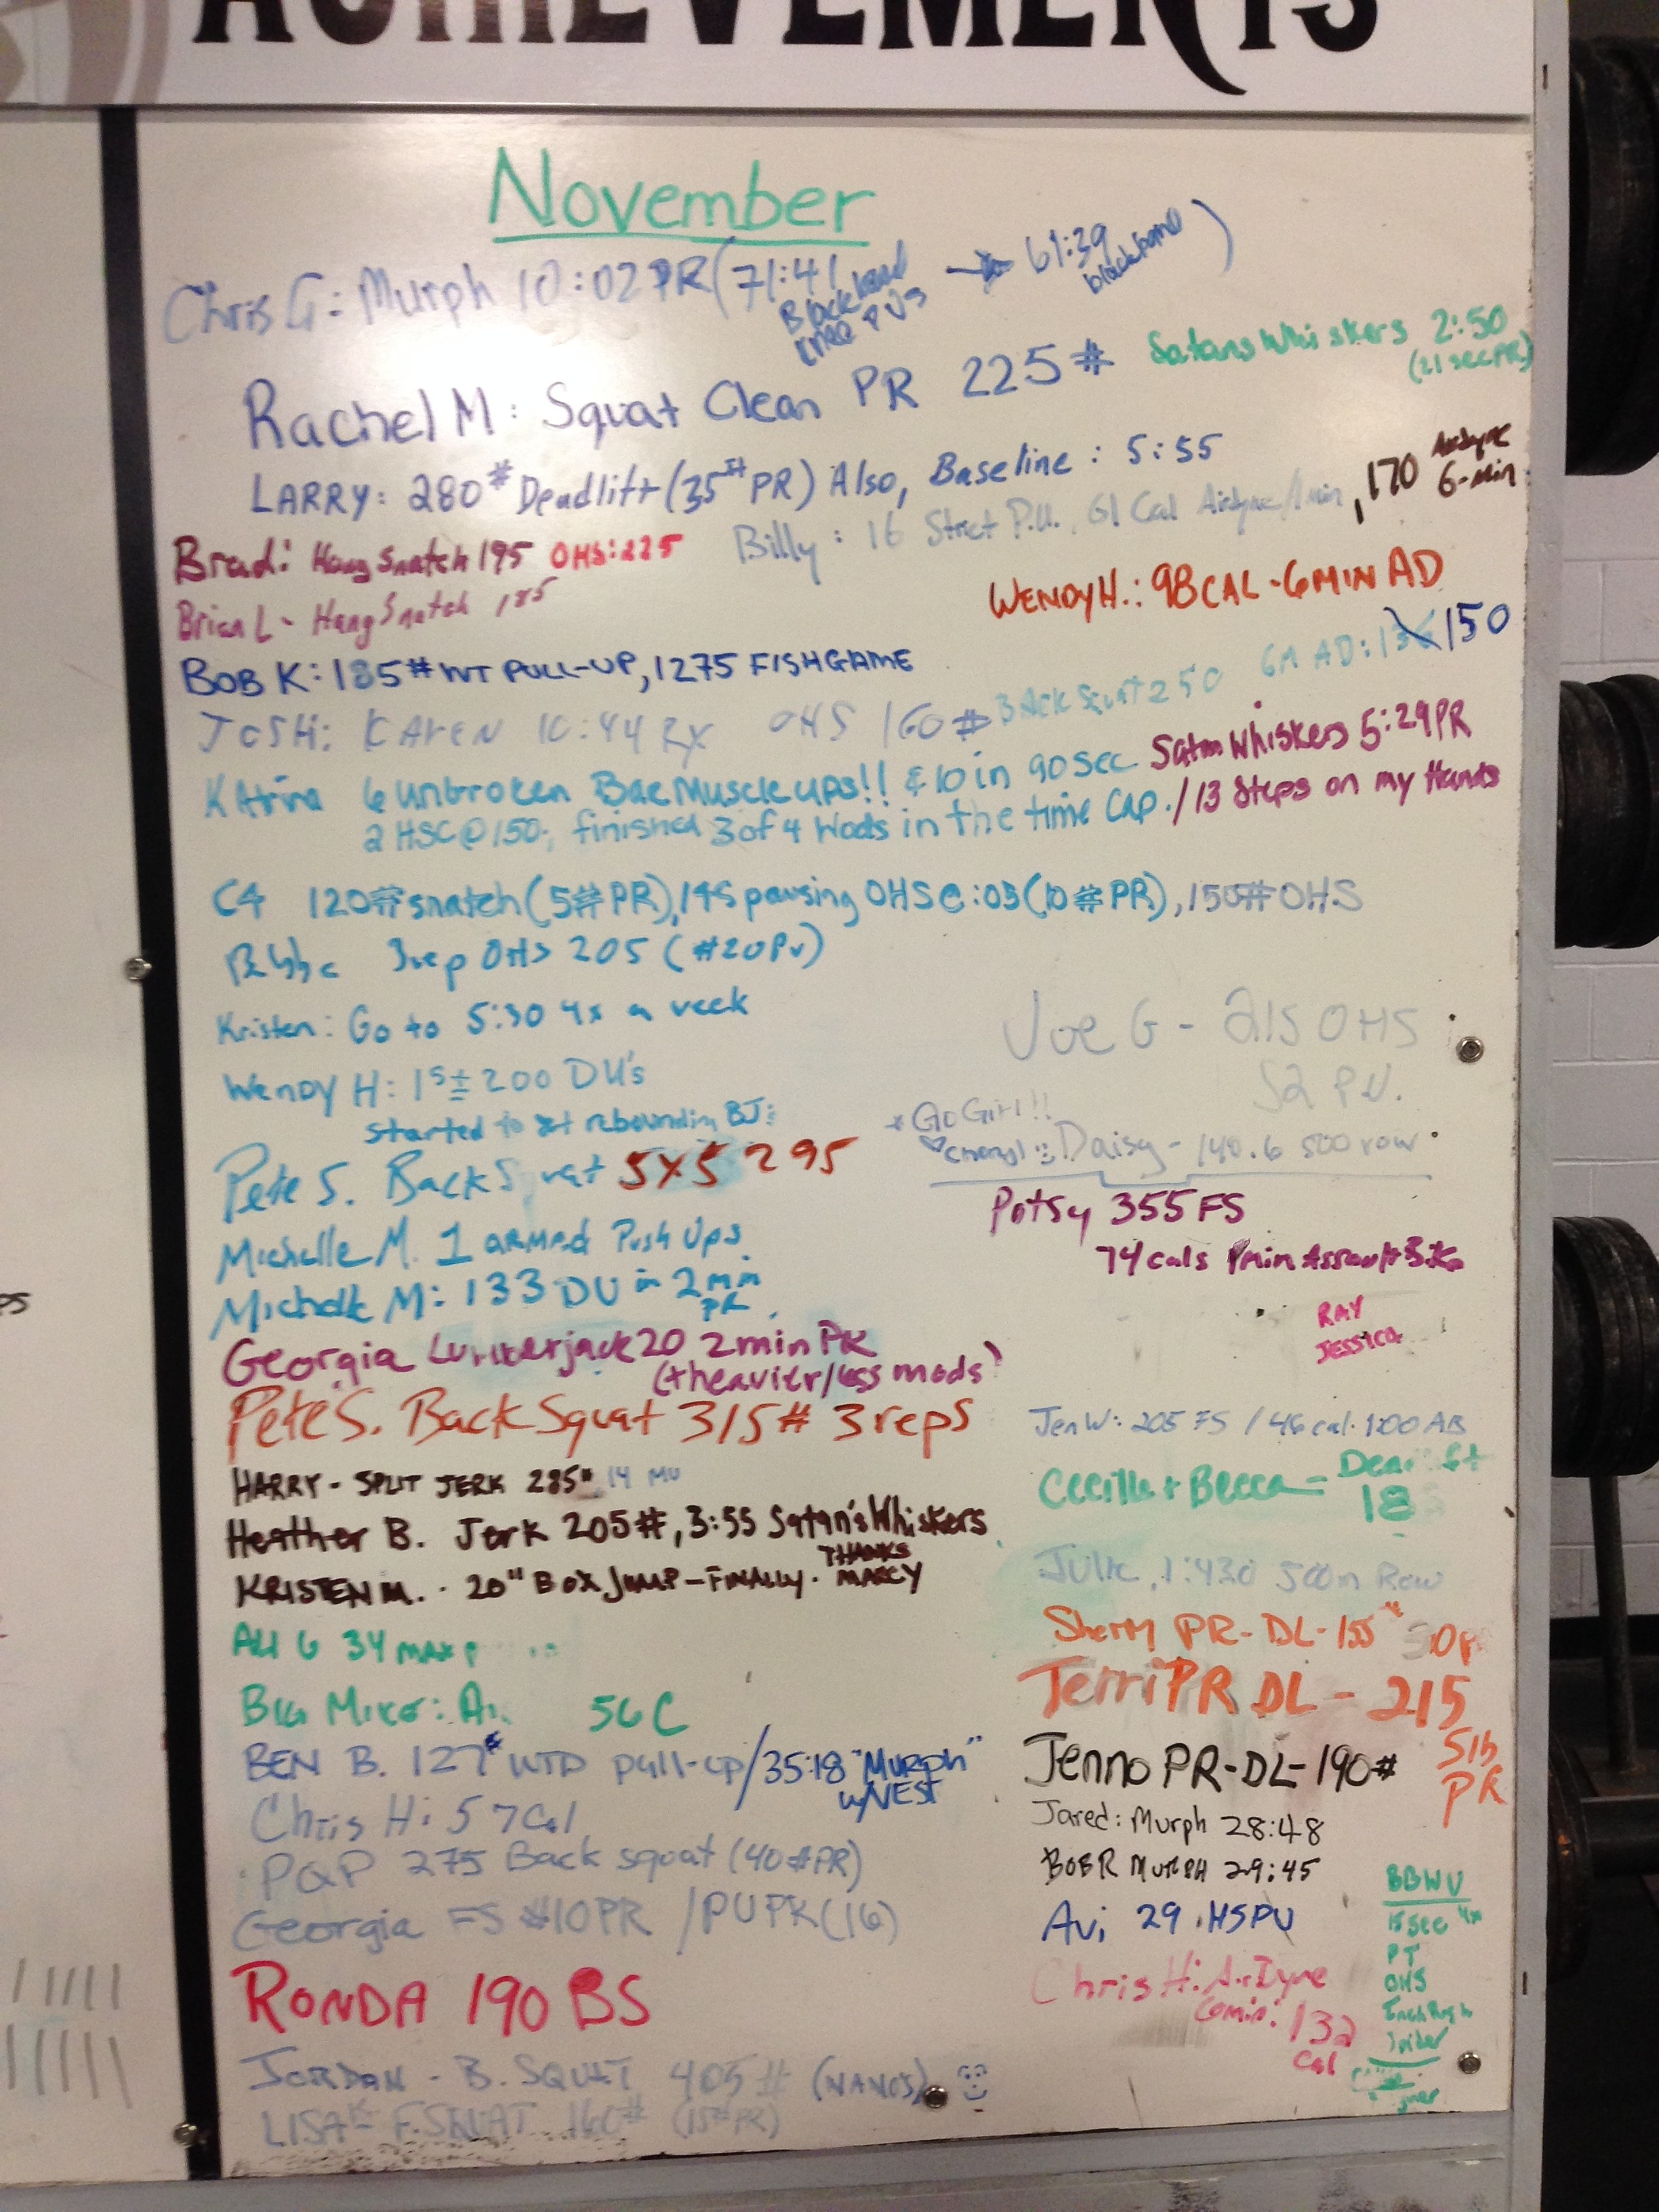 November Achievements! This has got to be the most PACKED board, all time. Way to go CFNE!